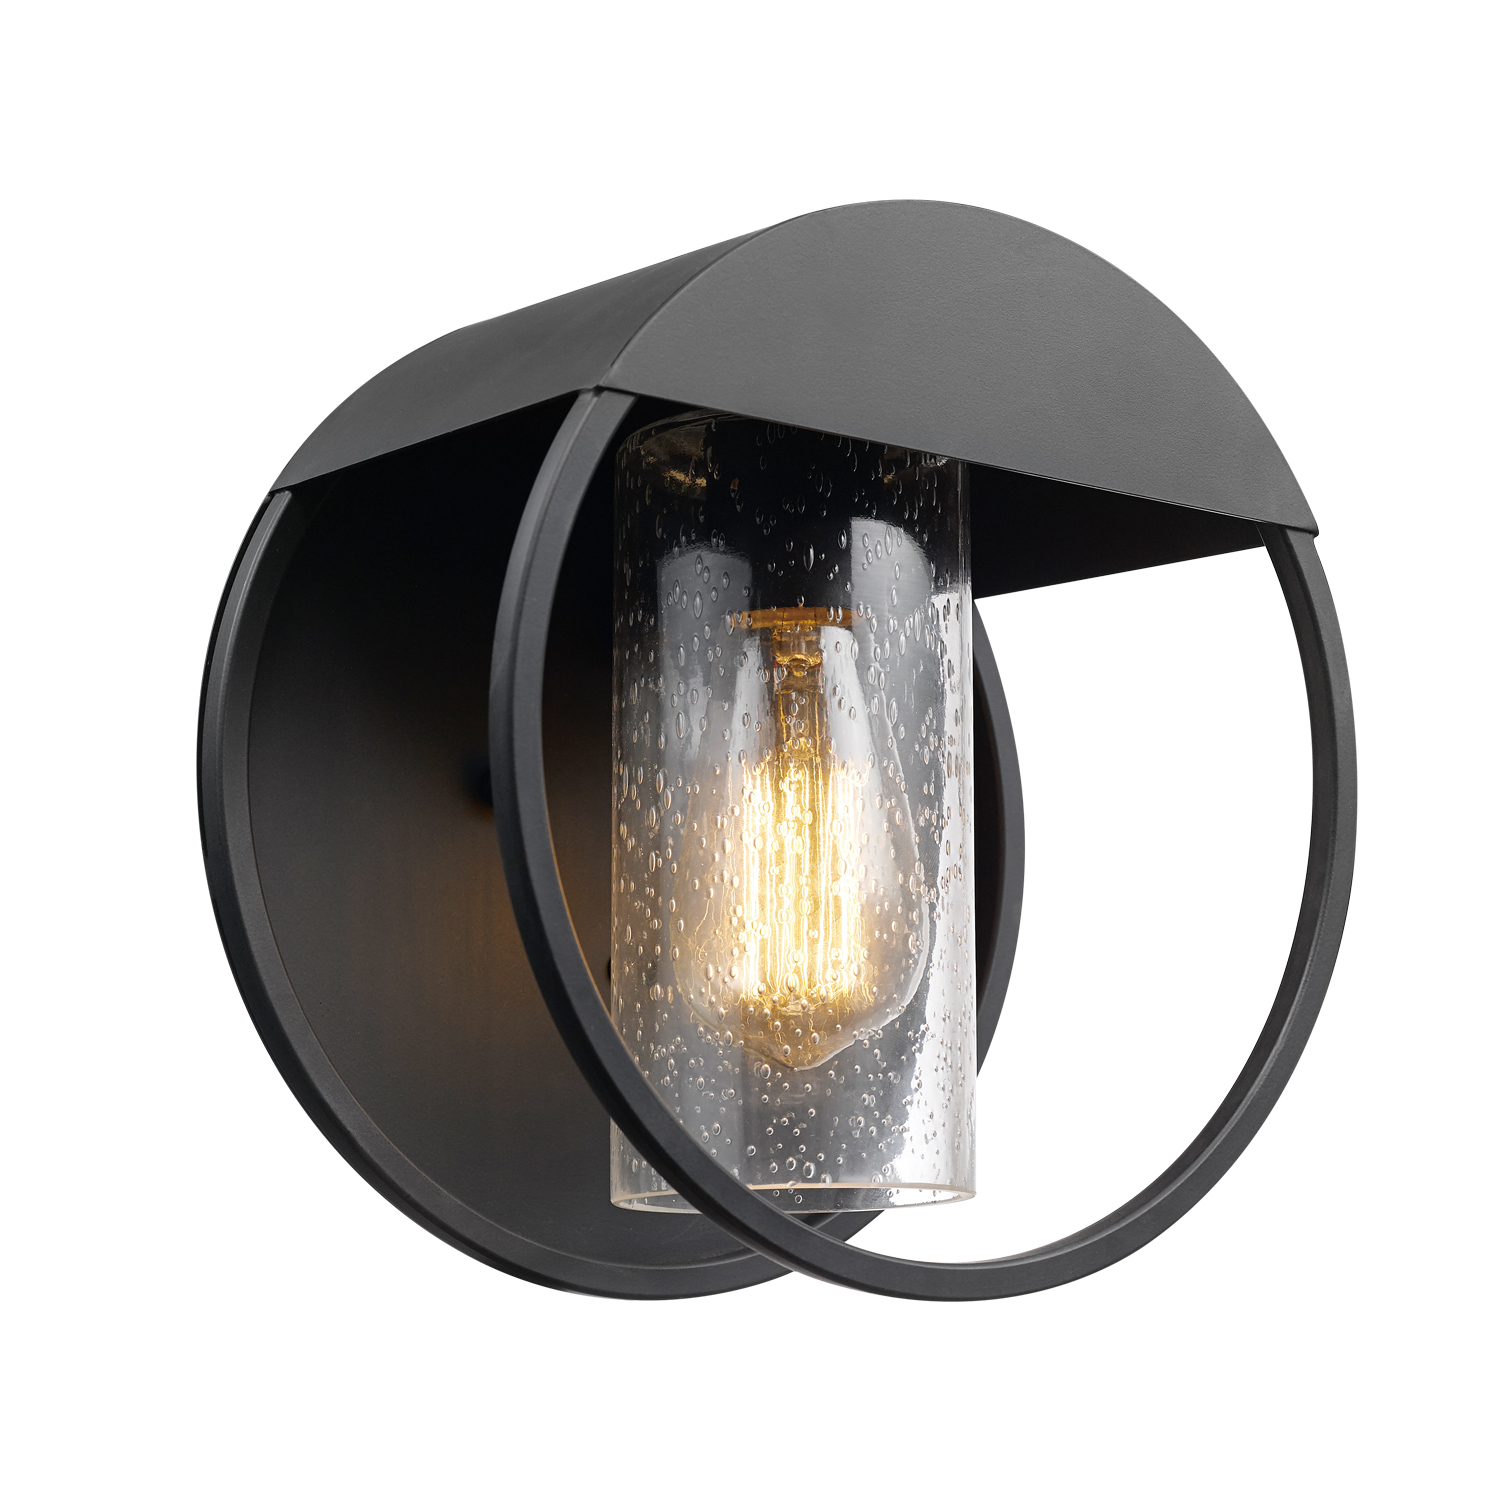 Globe Electric Neruda Matte Black Outdoor Indoor Wall Sconce with Seeded Glass Shade, 44335